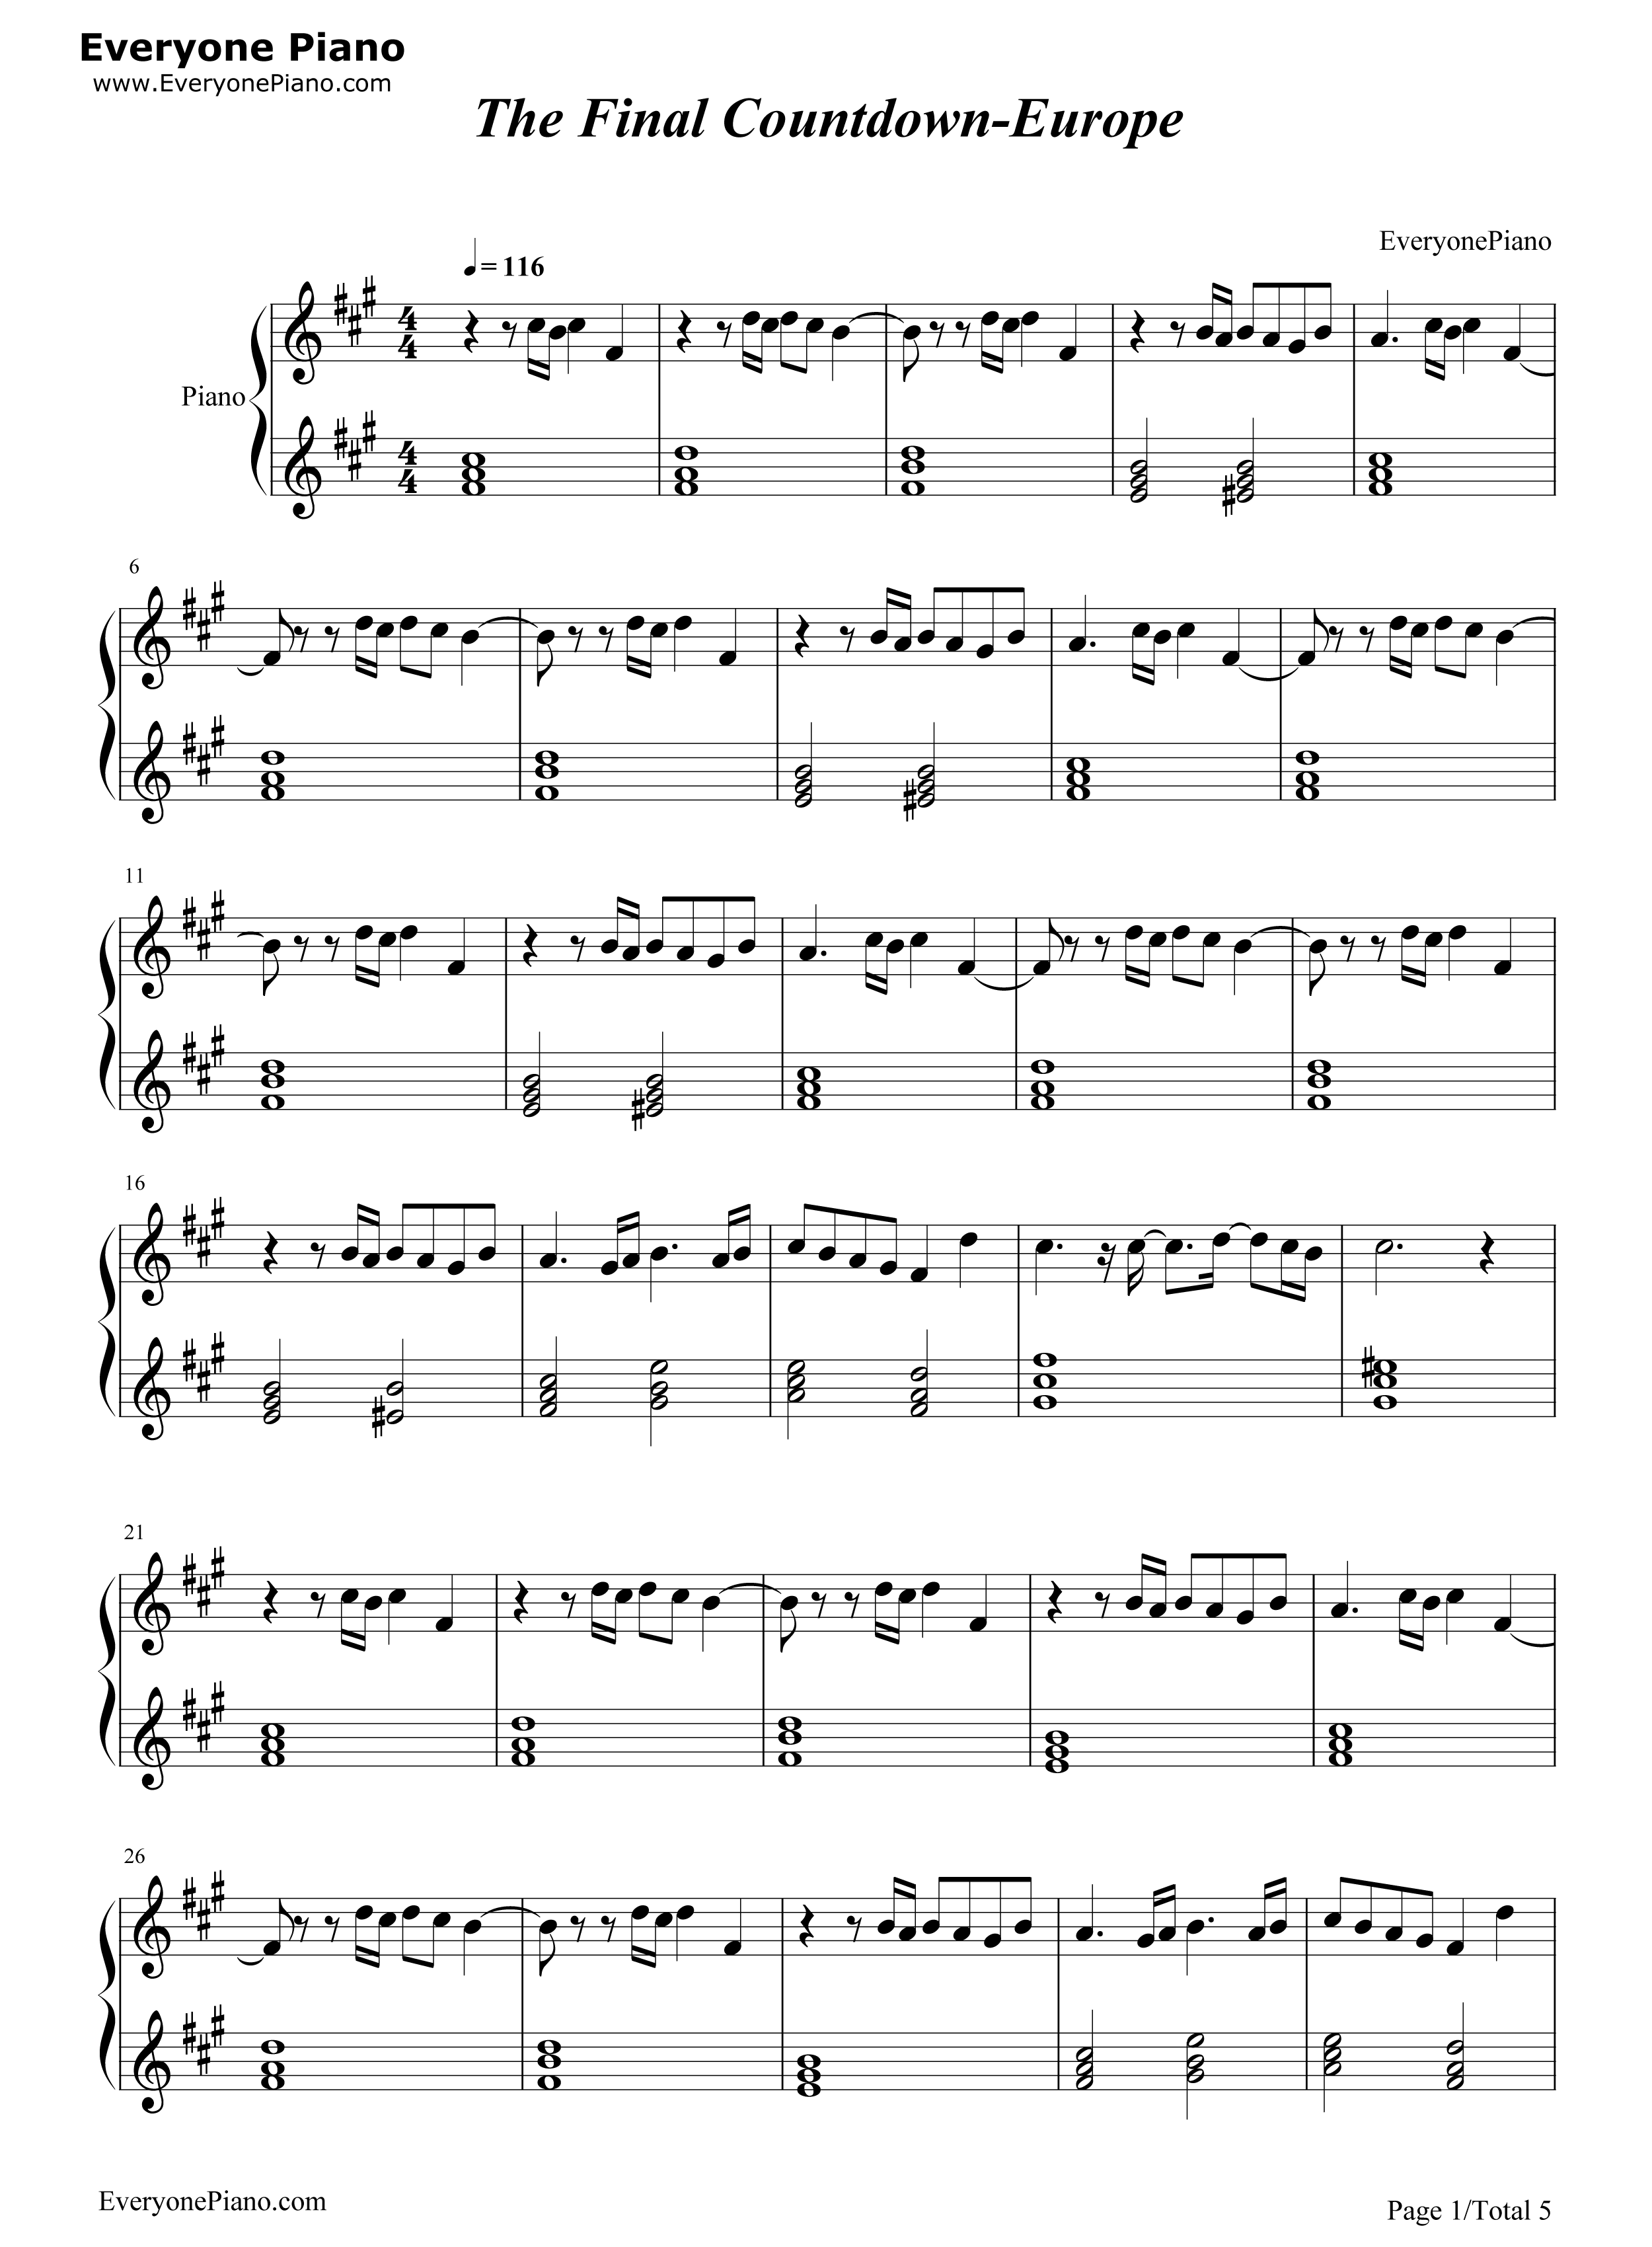 The final countdown europe stave preview 1 free piano sheet music listen now print sheet the final countdown europe stave preview 1 hexwebz Gallery